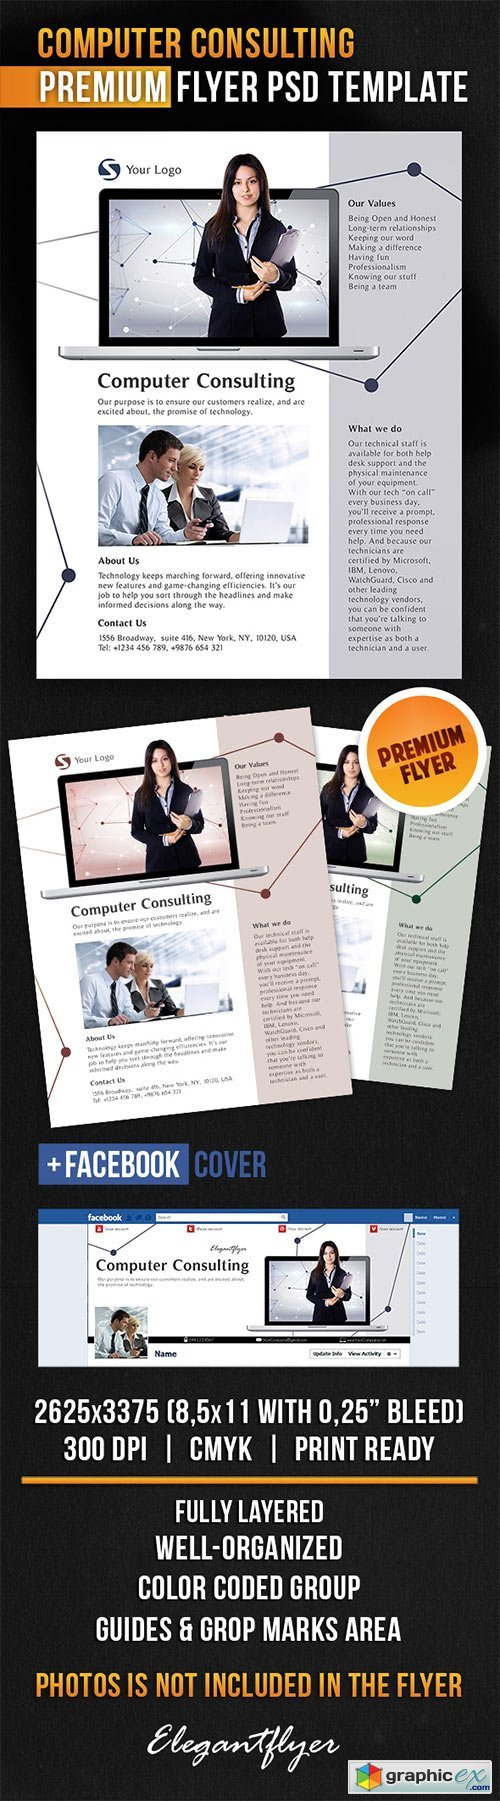 Computer Consulting Flyer PSD Template + Facebook Cover